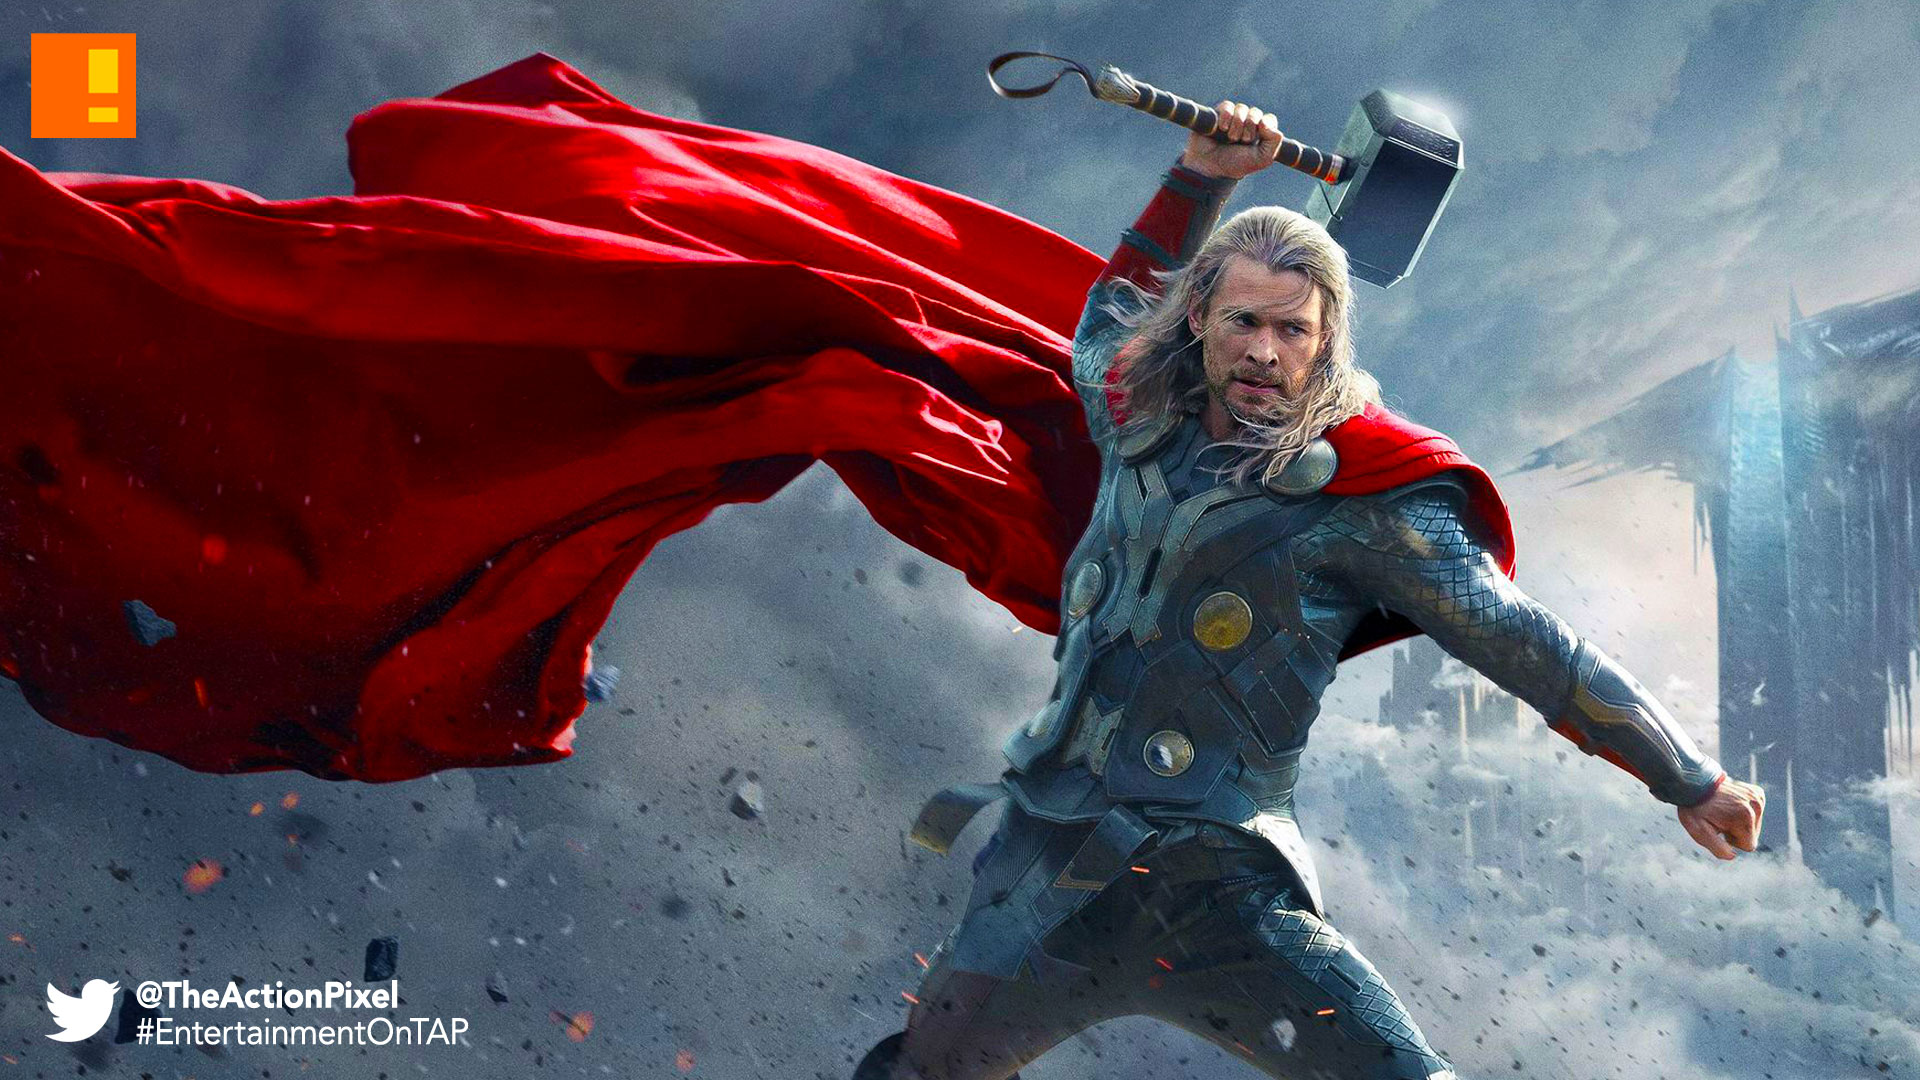 thor, marvel, marvel studios, disney, chris hemsworth, entertainment on tap, the action pixel